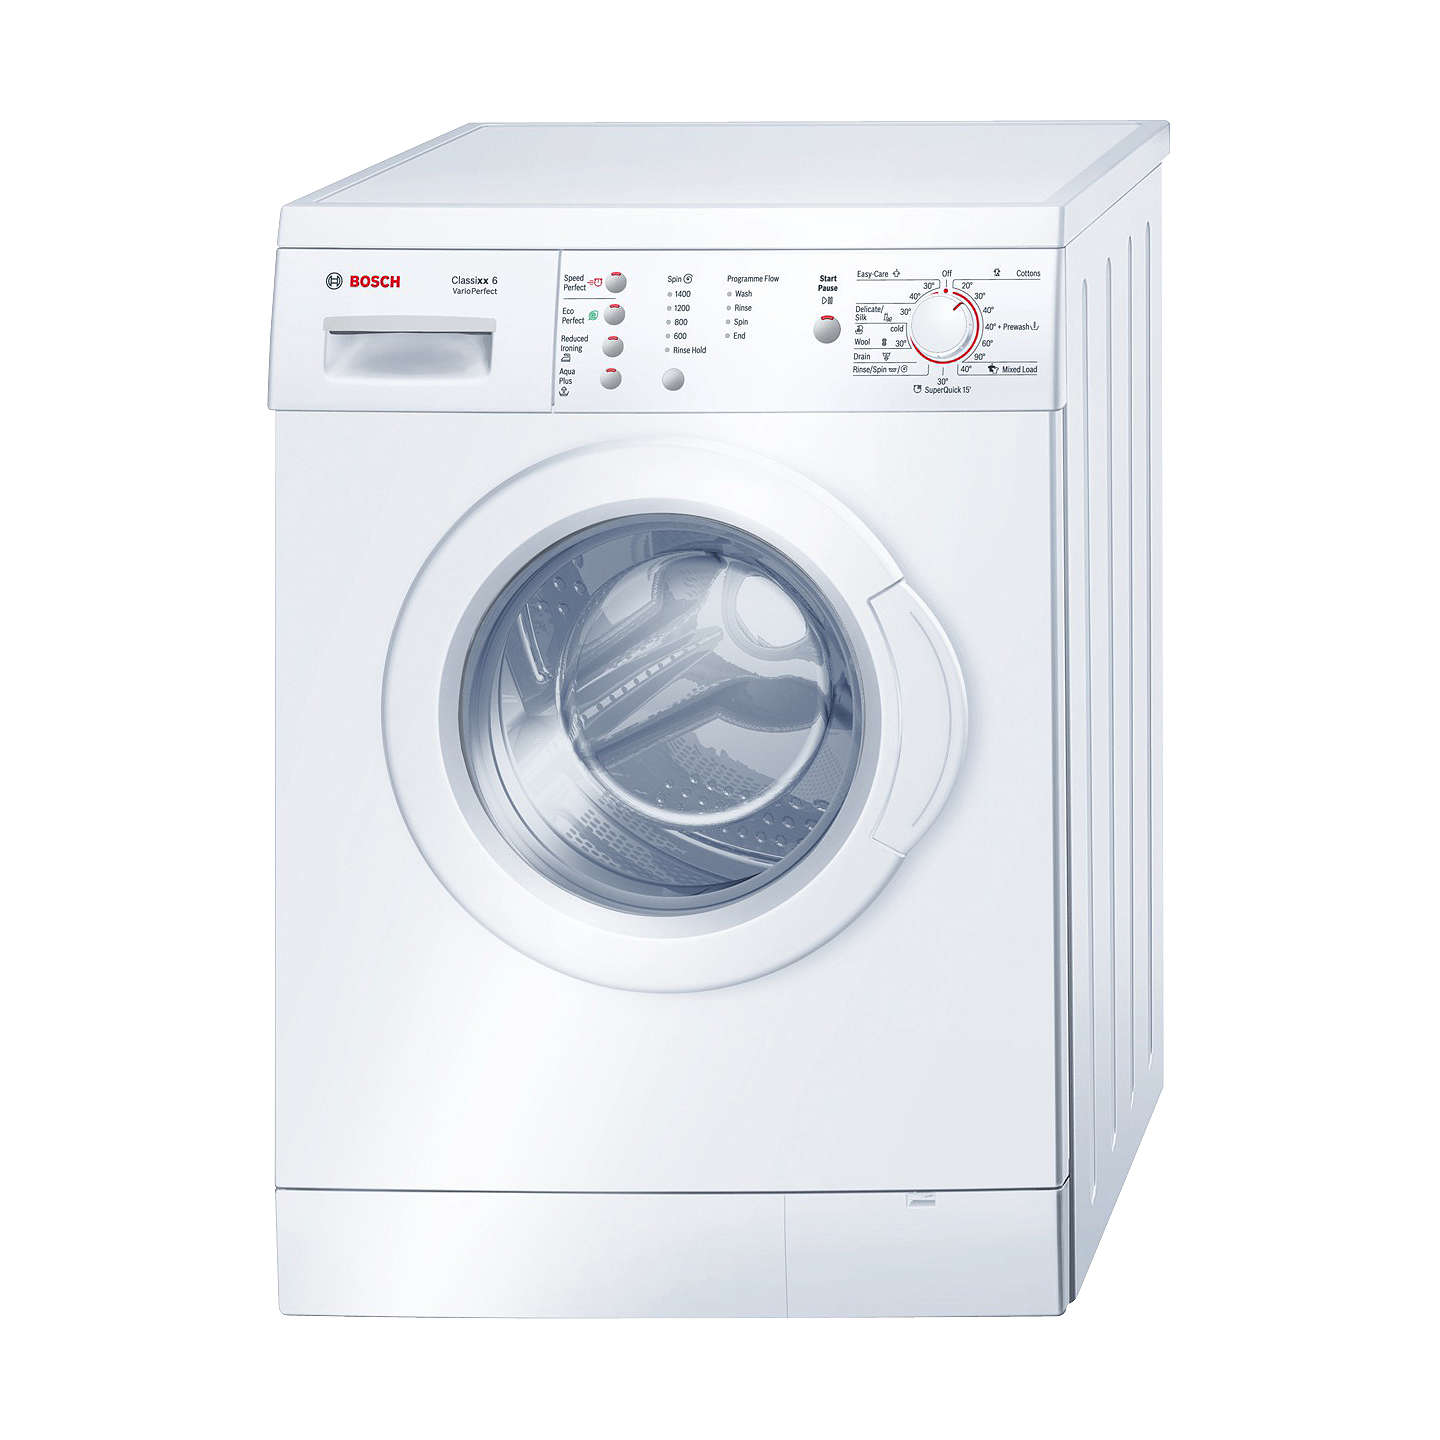 bosch classixx 5 washing machine manual sample user manual u2022 rh digiterica co bosch classixx 1200 slimline washing machine manual bosch classixx 6 1200 express washing machine manual f21